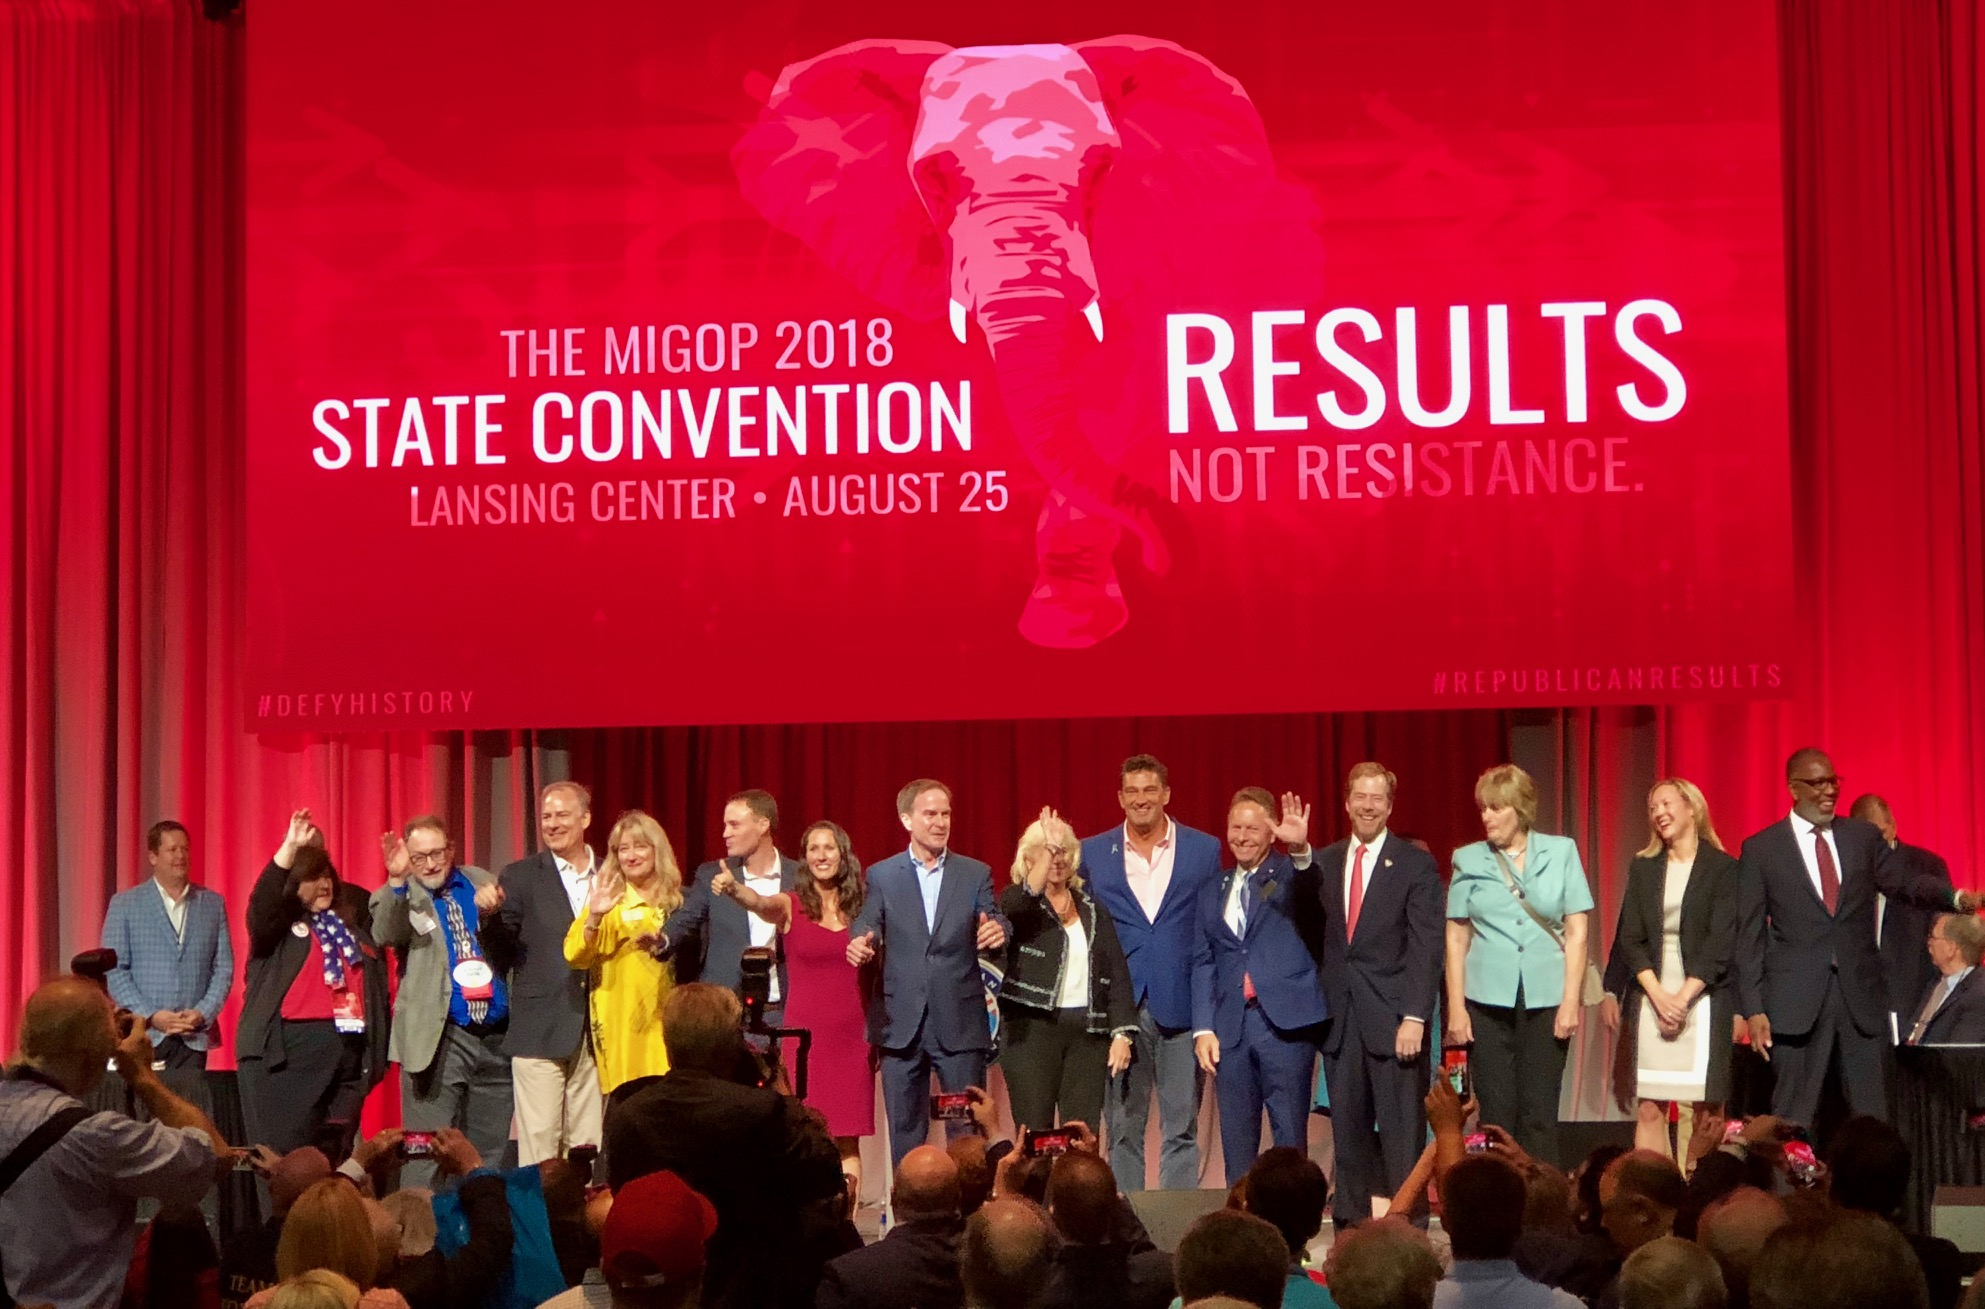 The members of the Michigan Republican ticket in 2018.